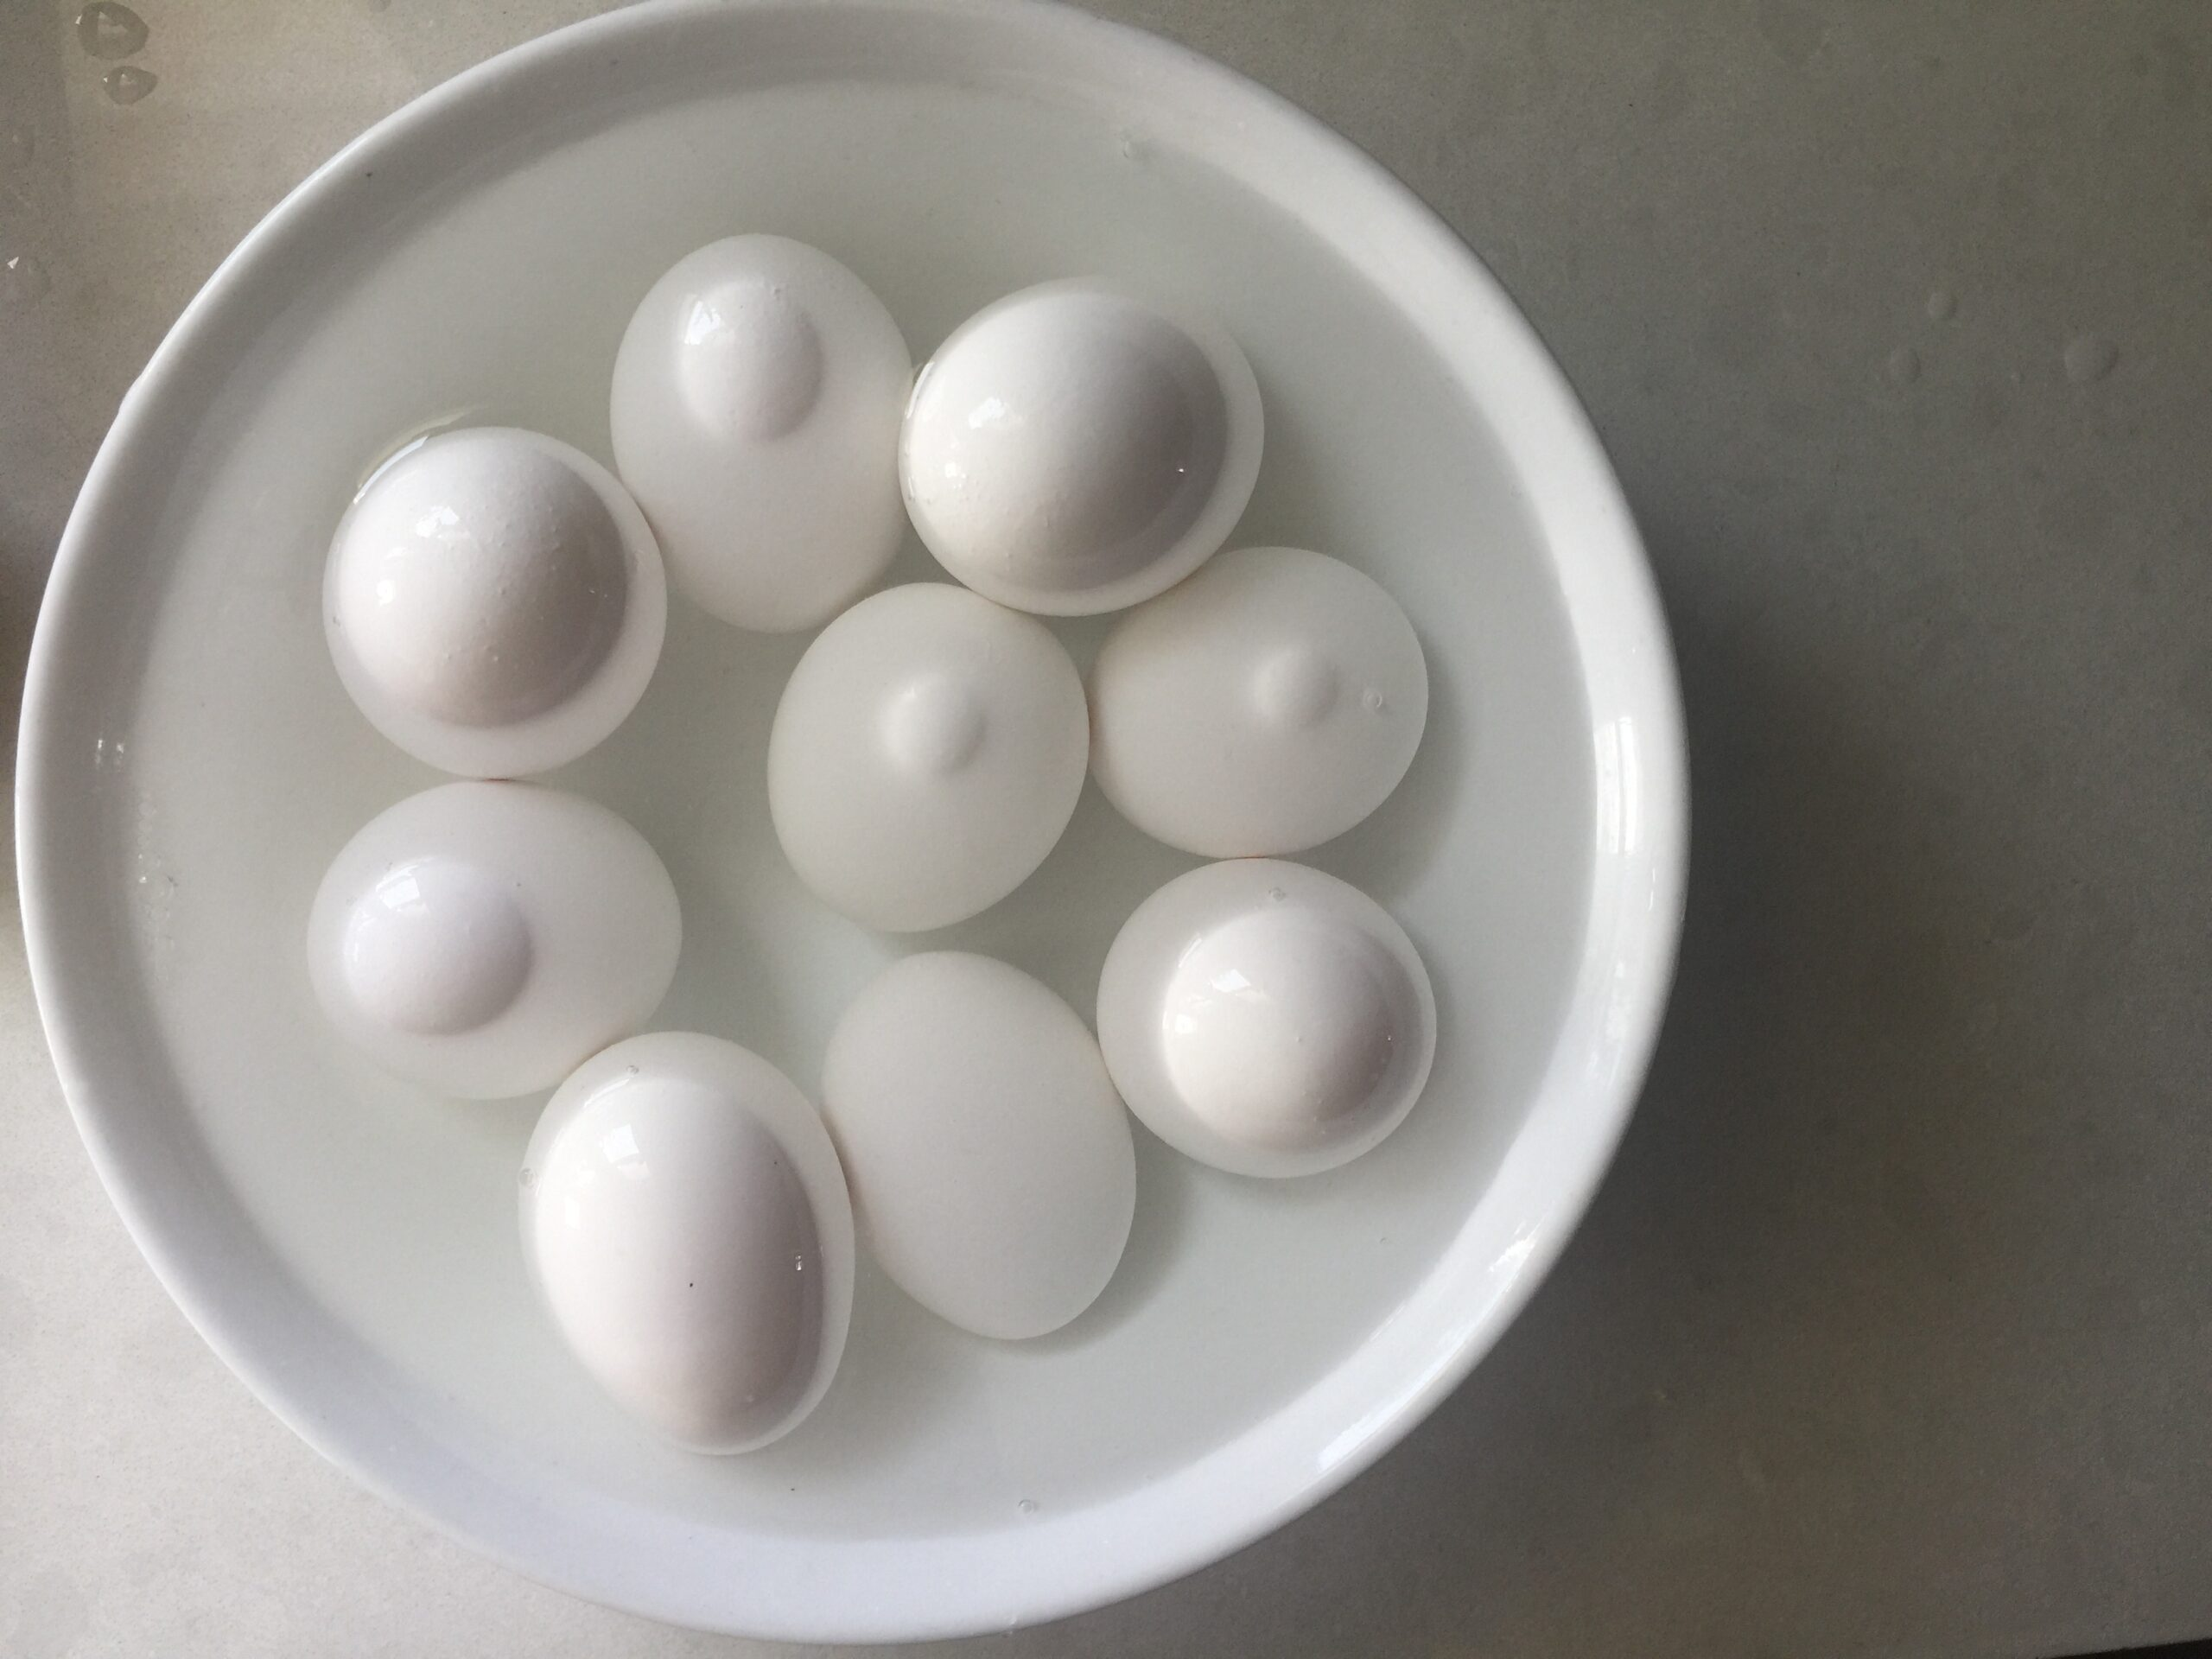 Place baked eggs in an ice bath to cool to hard boil eggs in the oven